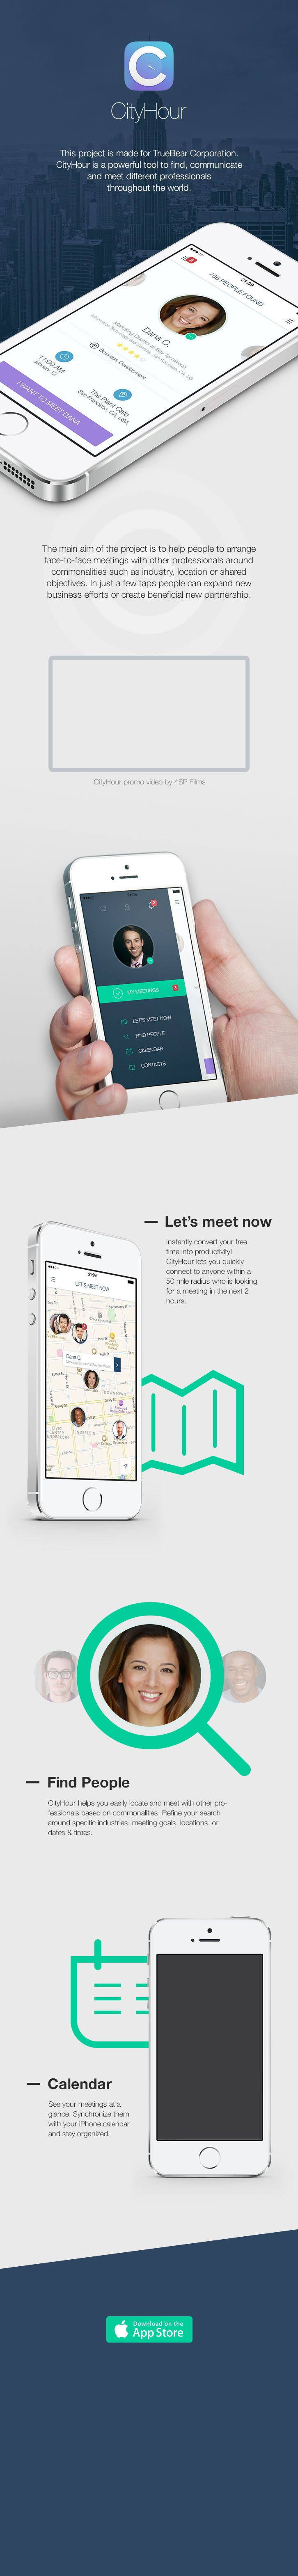 Mobile App Design Inspiration – CityHour (available free on App Store)